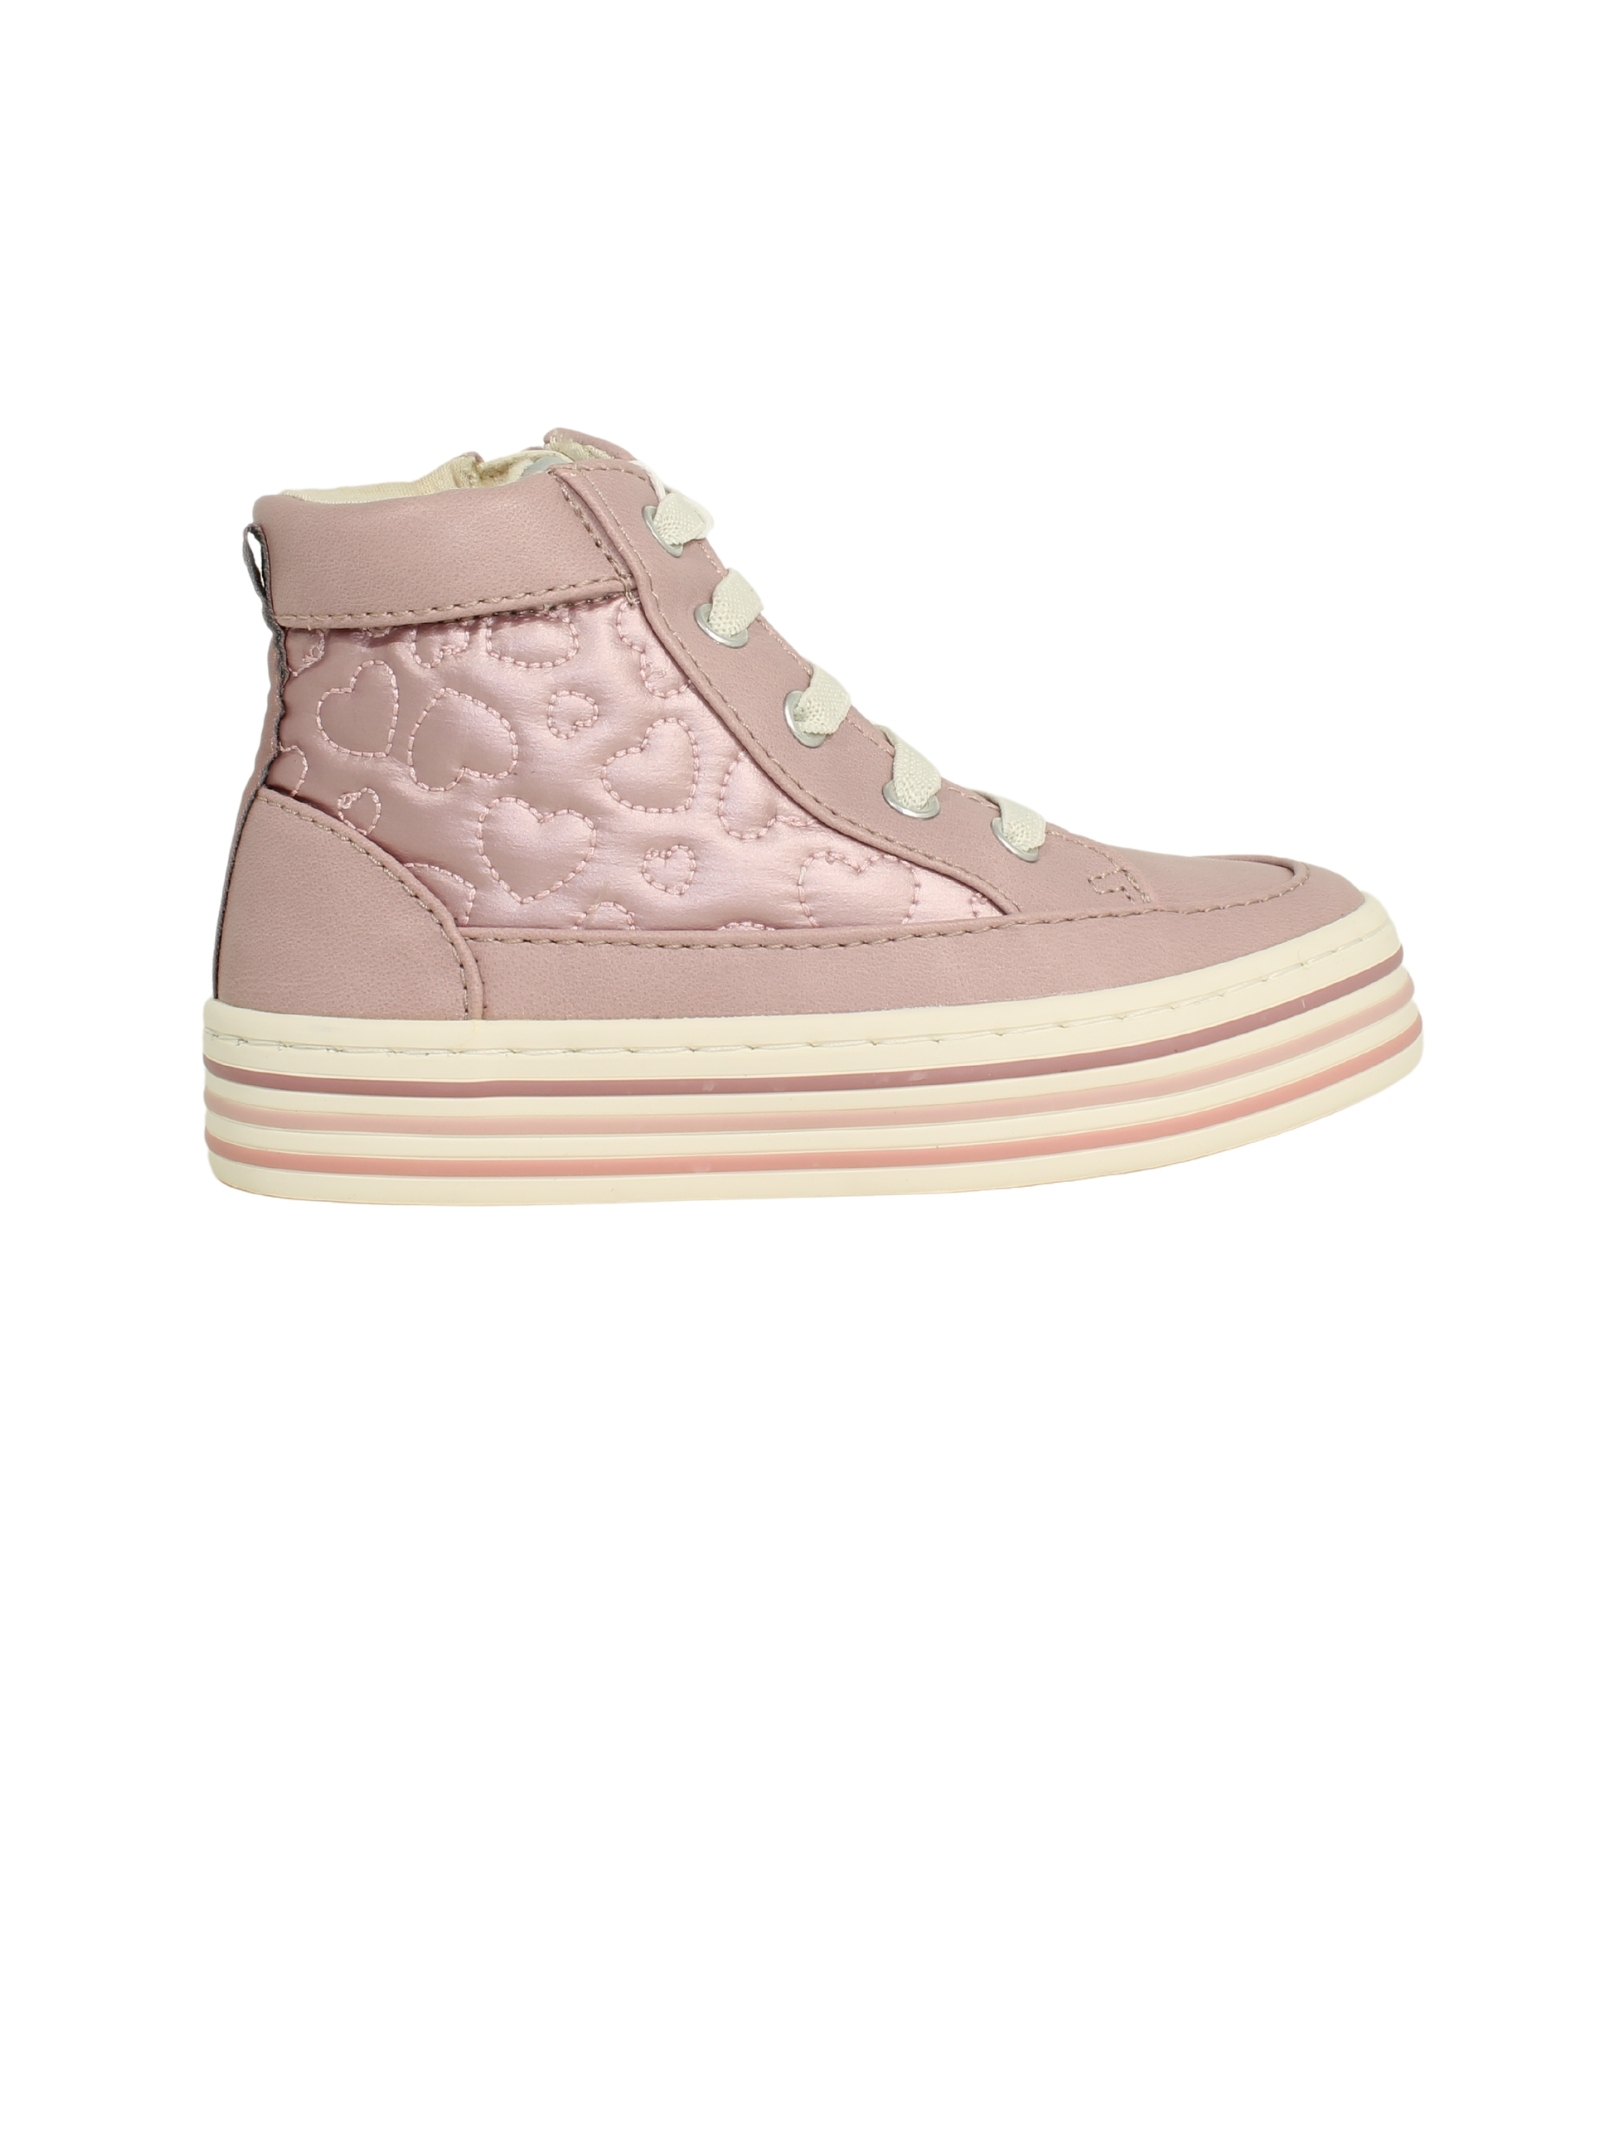 Sneakers Plateau Bambina MAYORAL   Sneakers   44245062